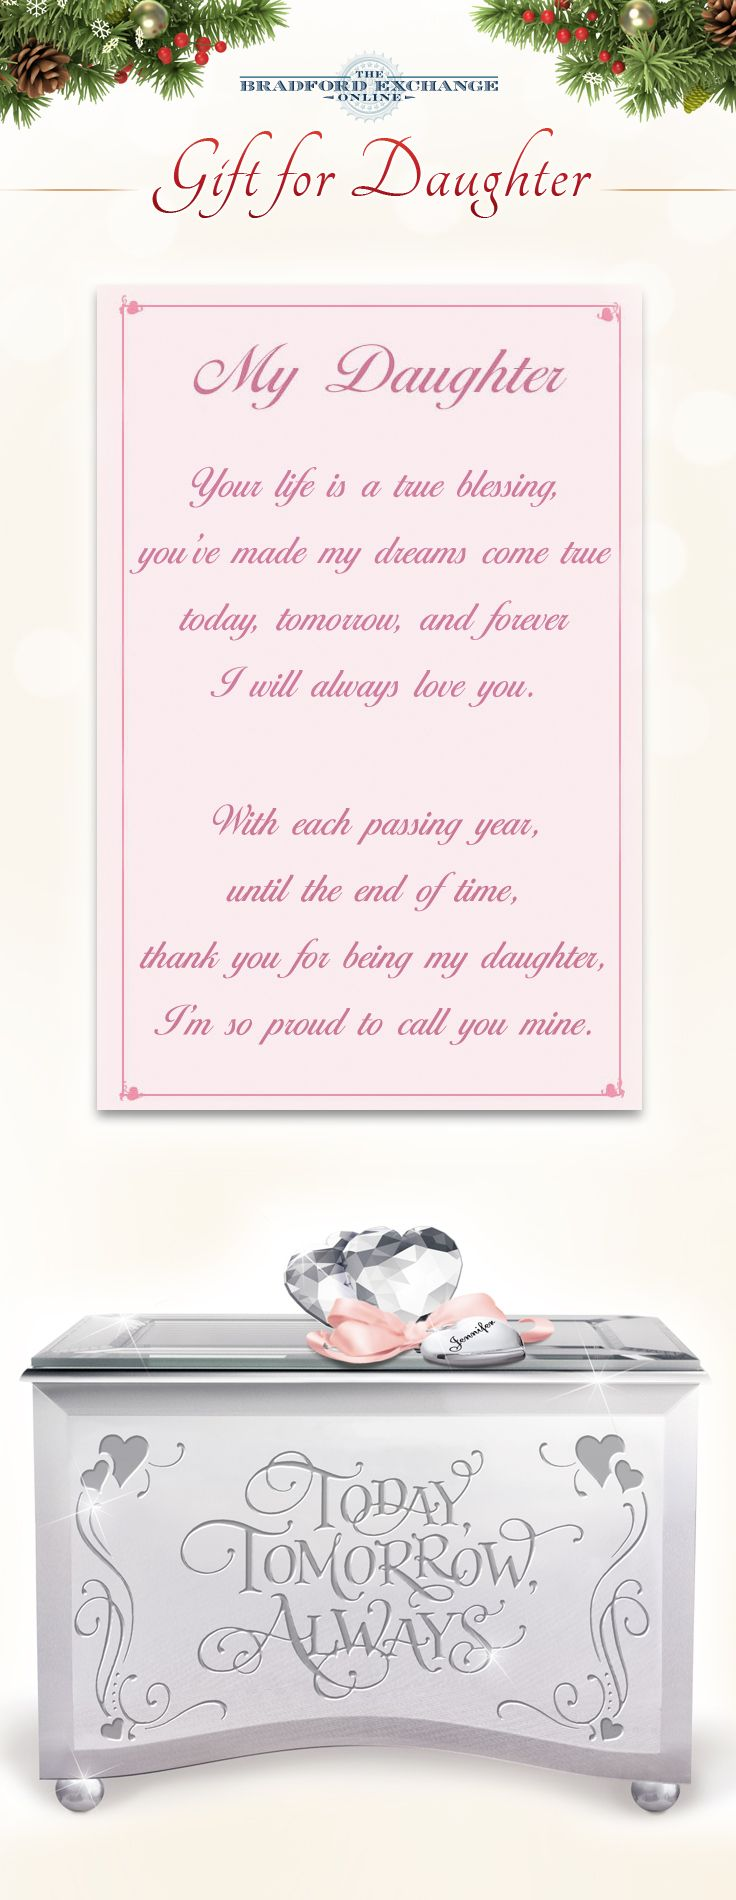 79 Best Gifts For Daughter Images On Pinterest Mother Daughters